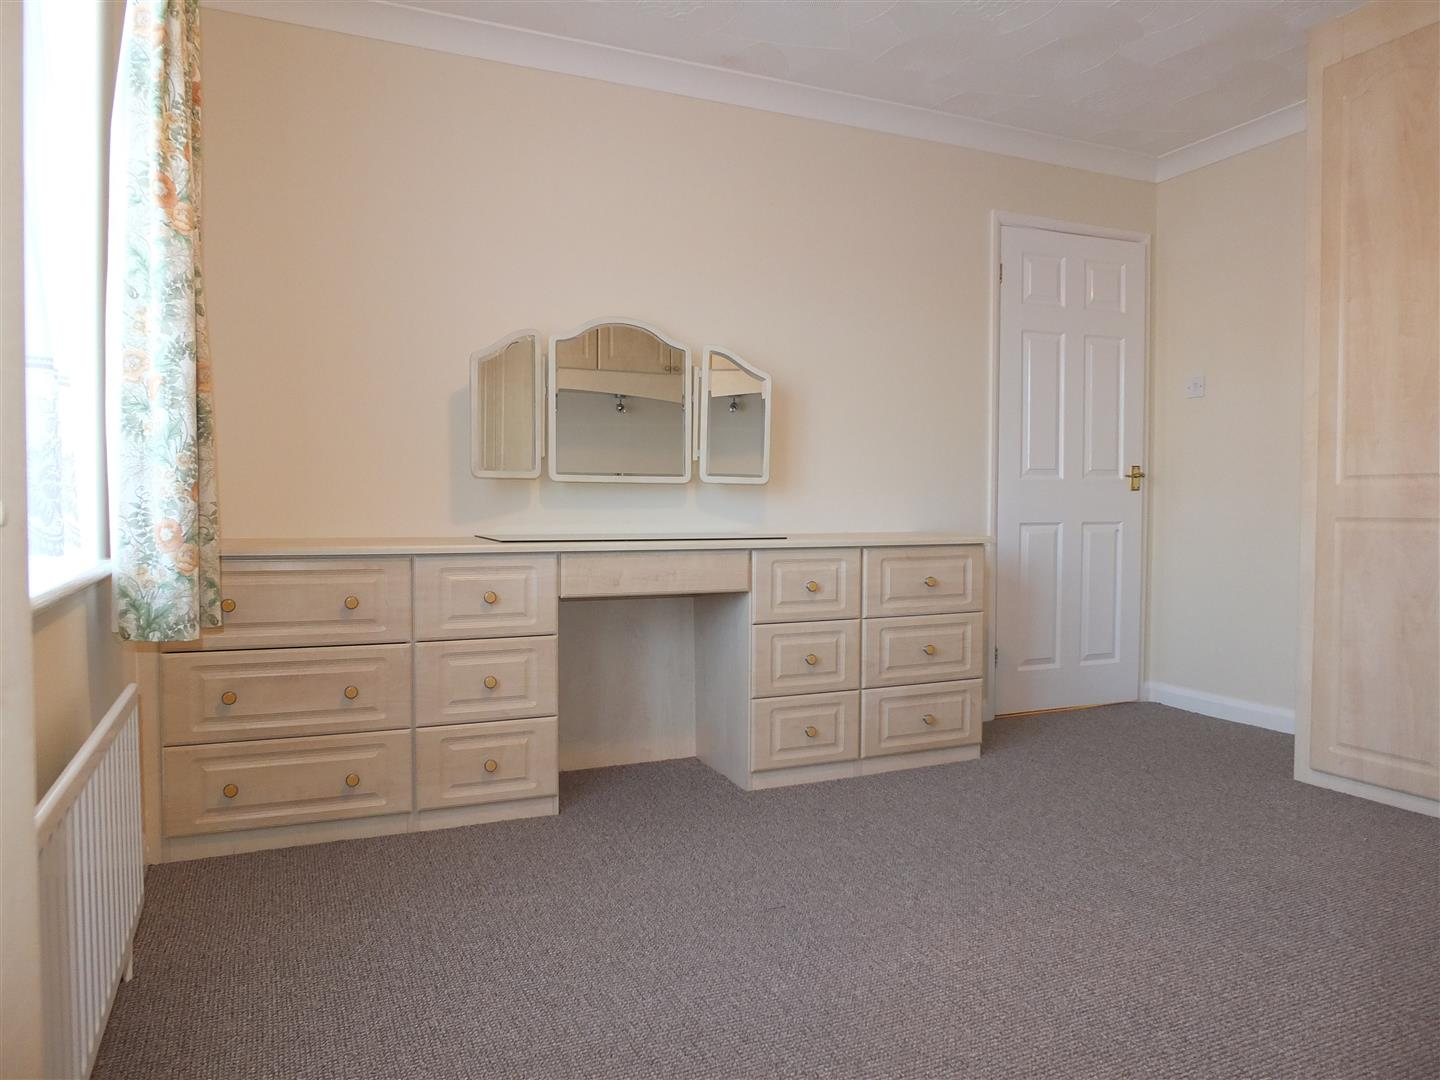 3 bed detached bungalow to rent in Spalding, PE12 9FA 4